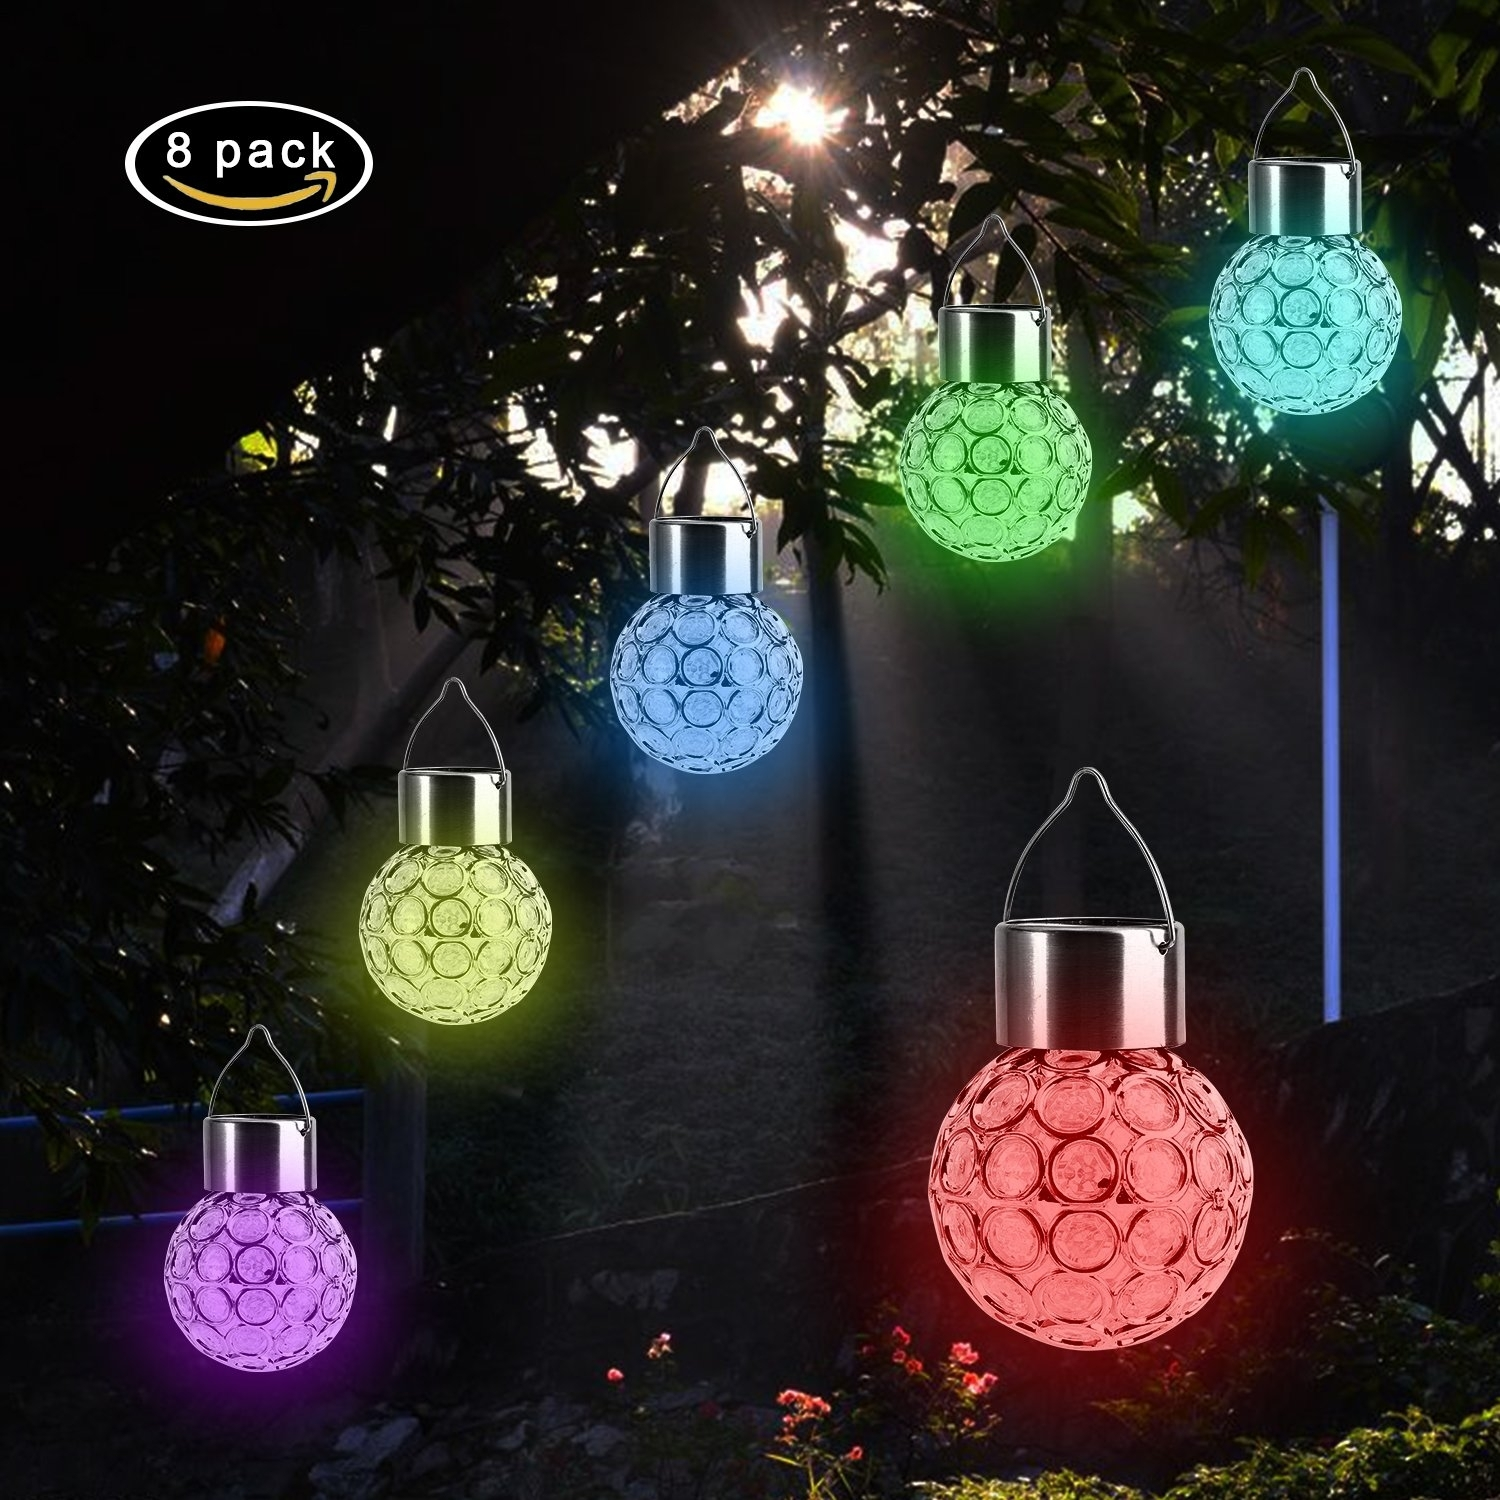 Inspiration about Garden Led Solar Hanging Lights Outdoor (8 Pack), Outdoor Hanging Pertaining To Outdoor Hanging Globe Lanterns (#7 of 15)